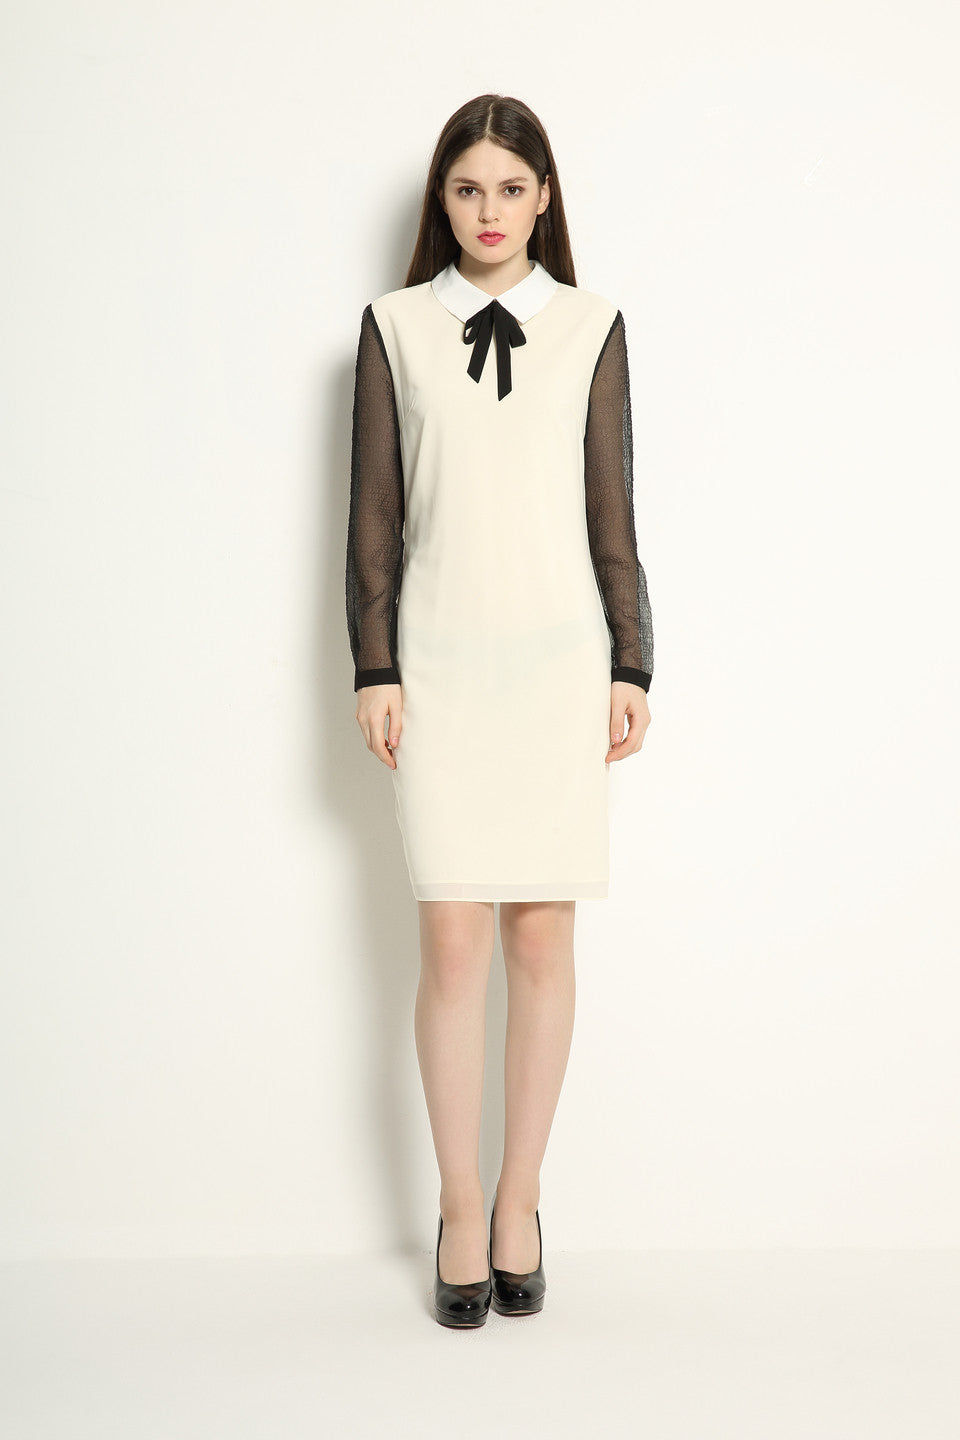 Japanese Organza Neck Tie Dress - GlanceZ   - 1